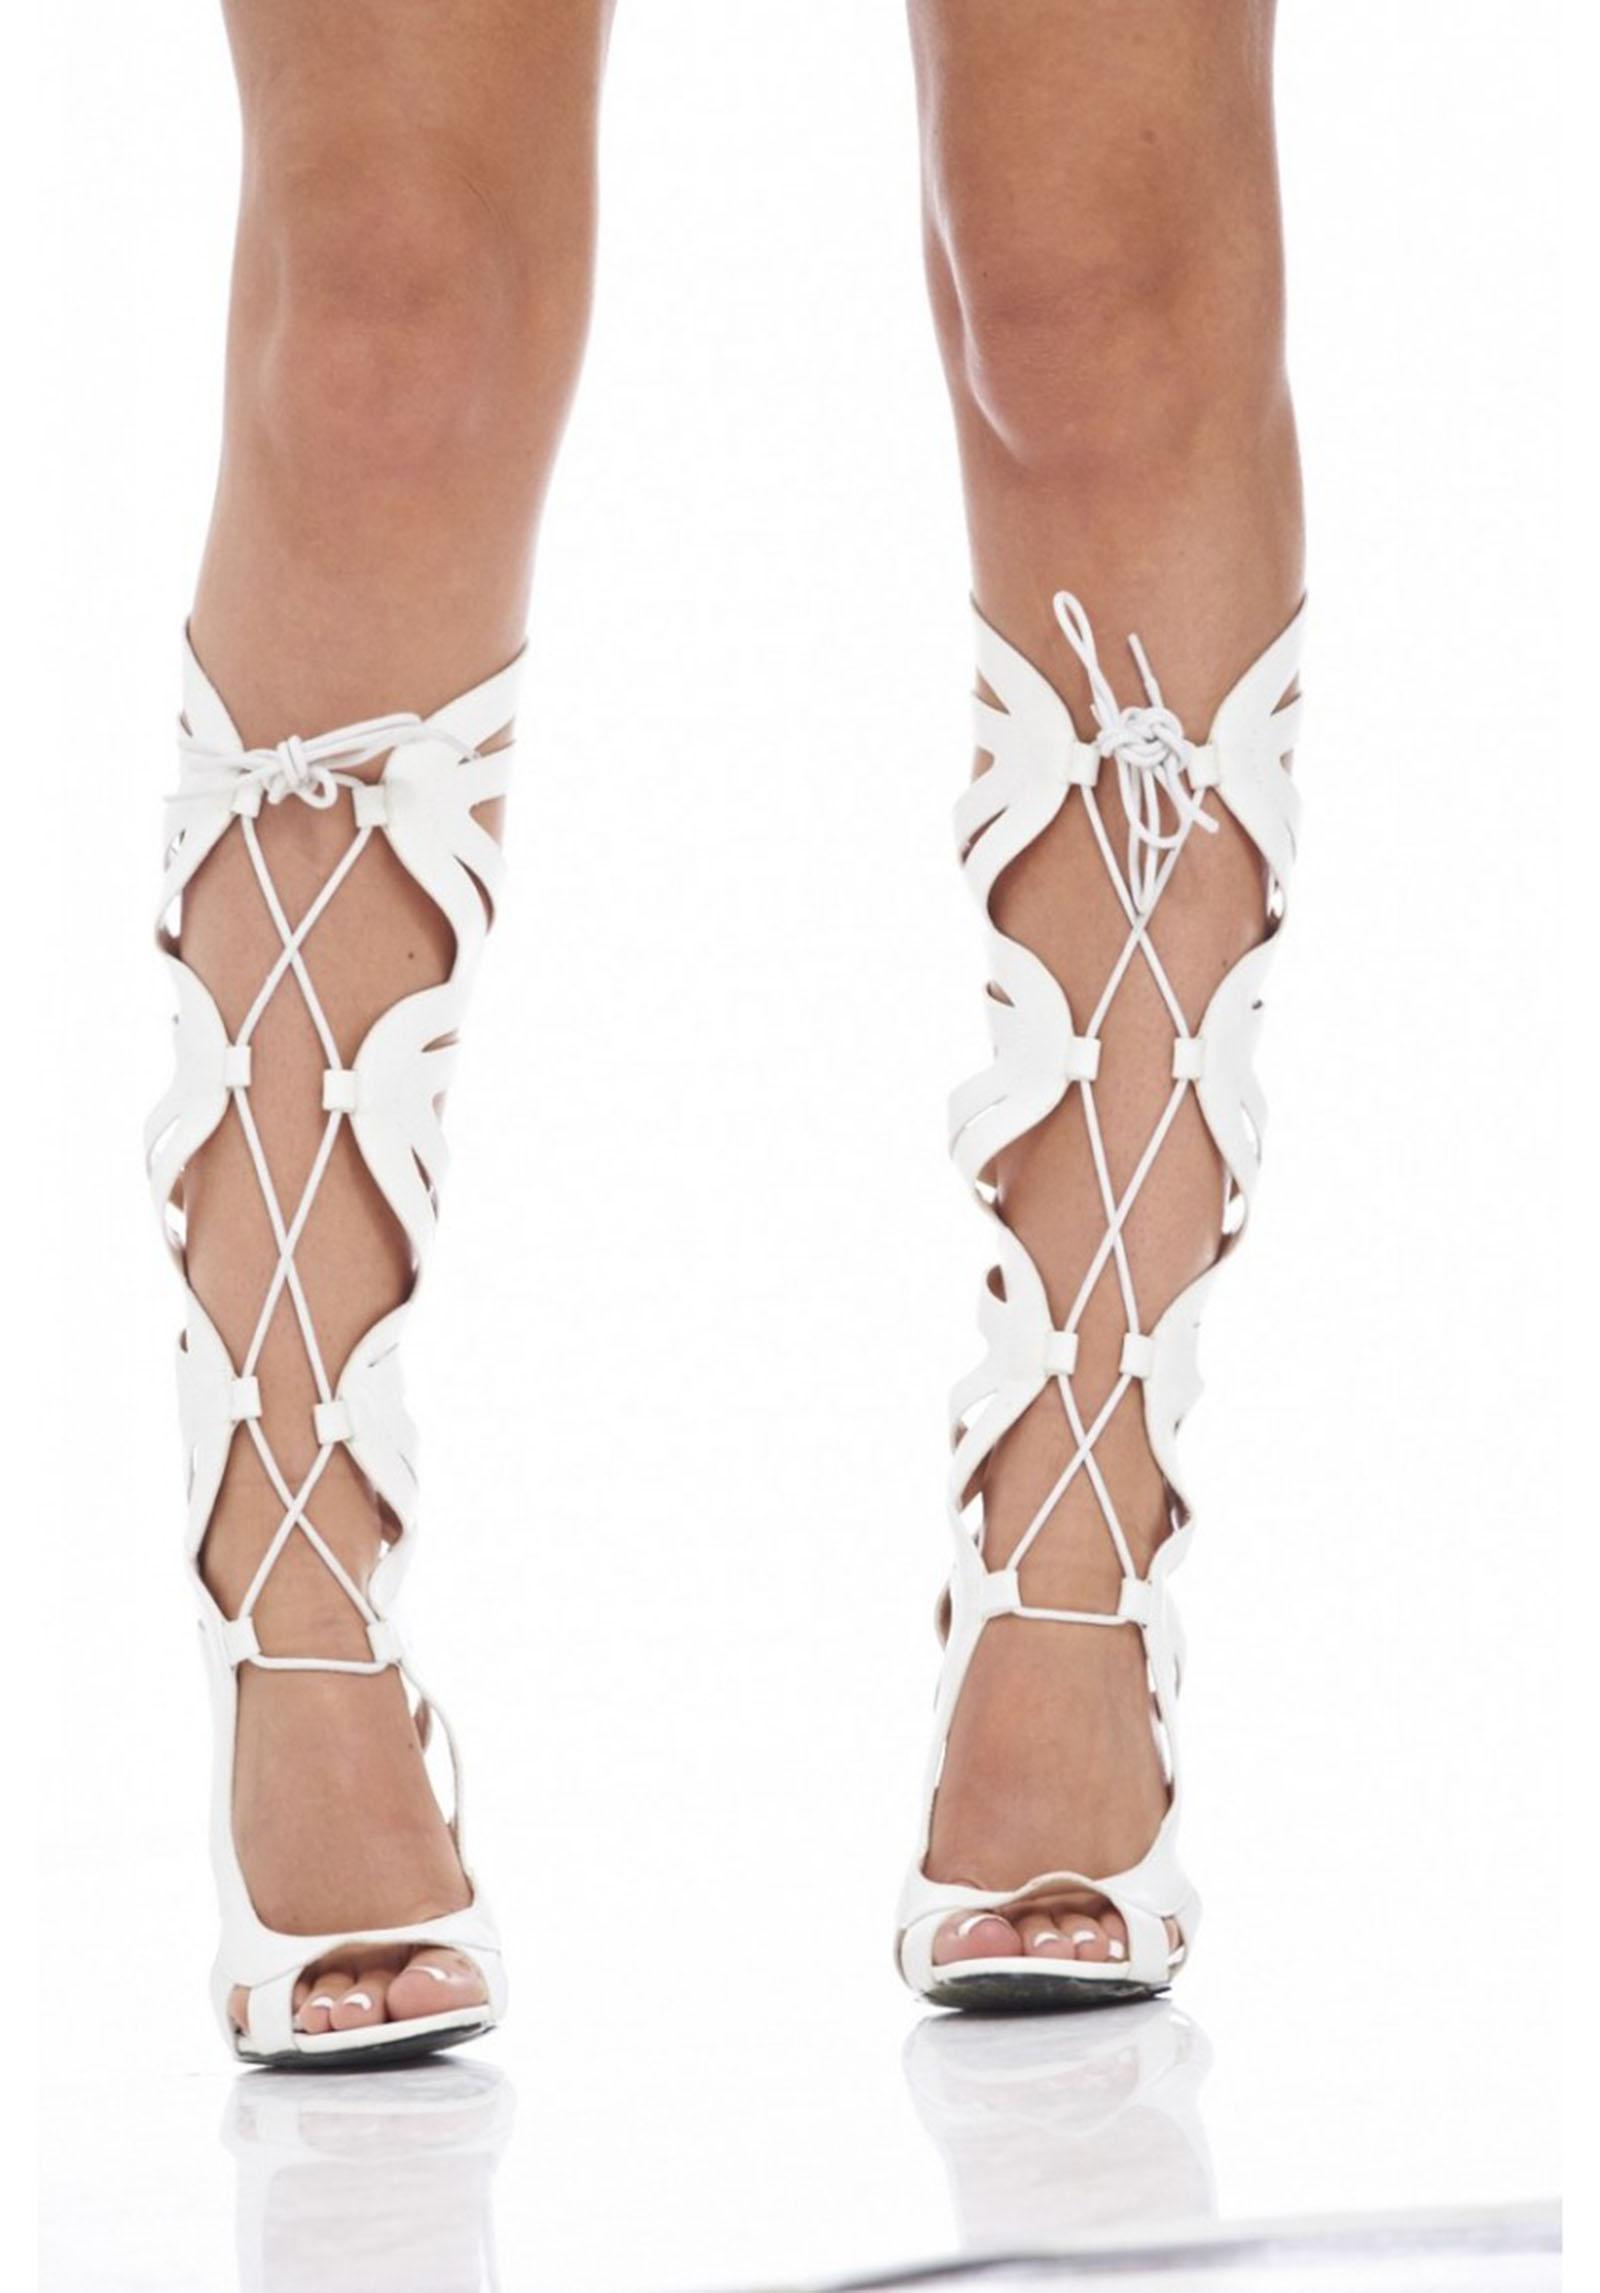 LADIES WHITE LACE-UP ROMAN CAGE GLADIATOR SANDAL STILETTO ZIP-UP BOOTS SHOES 3-7